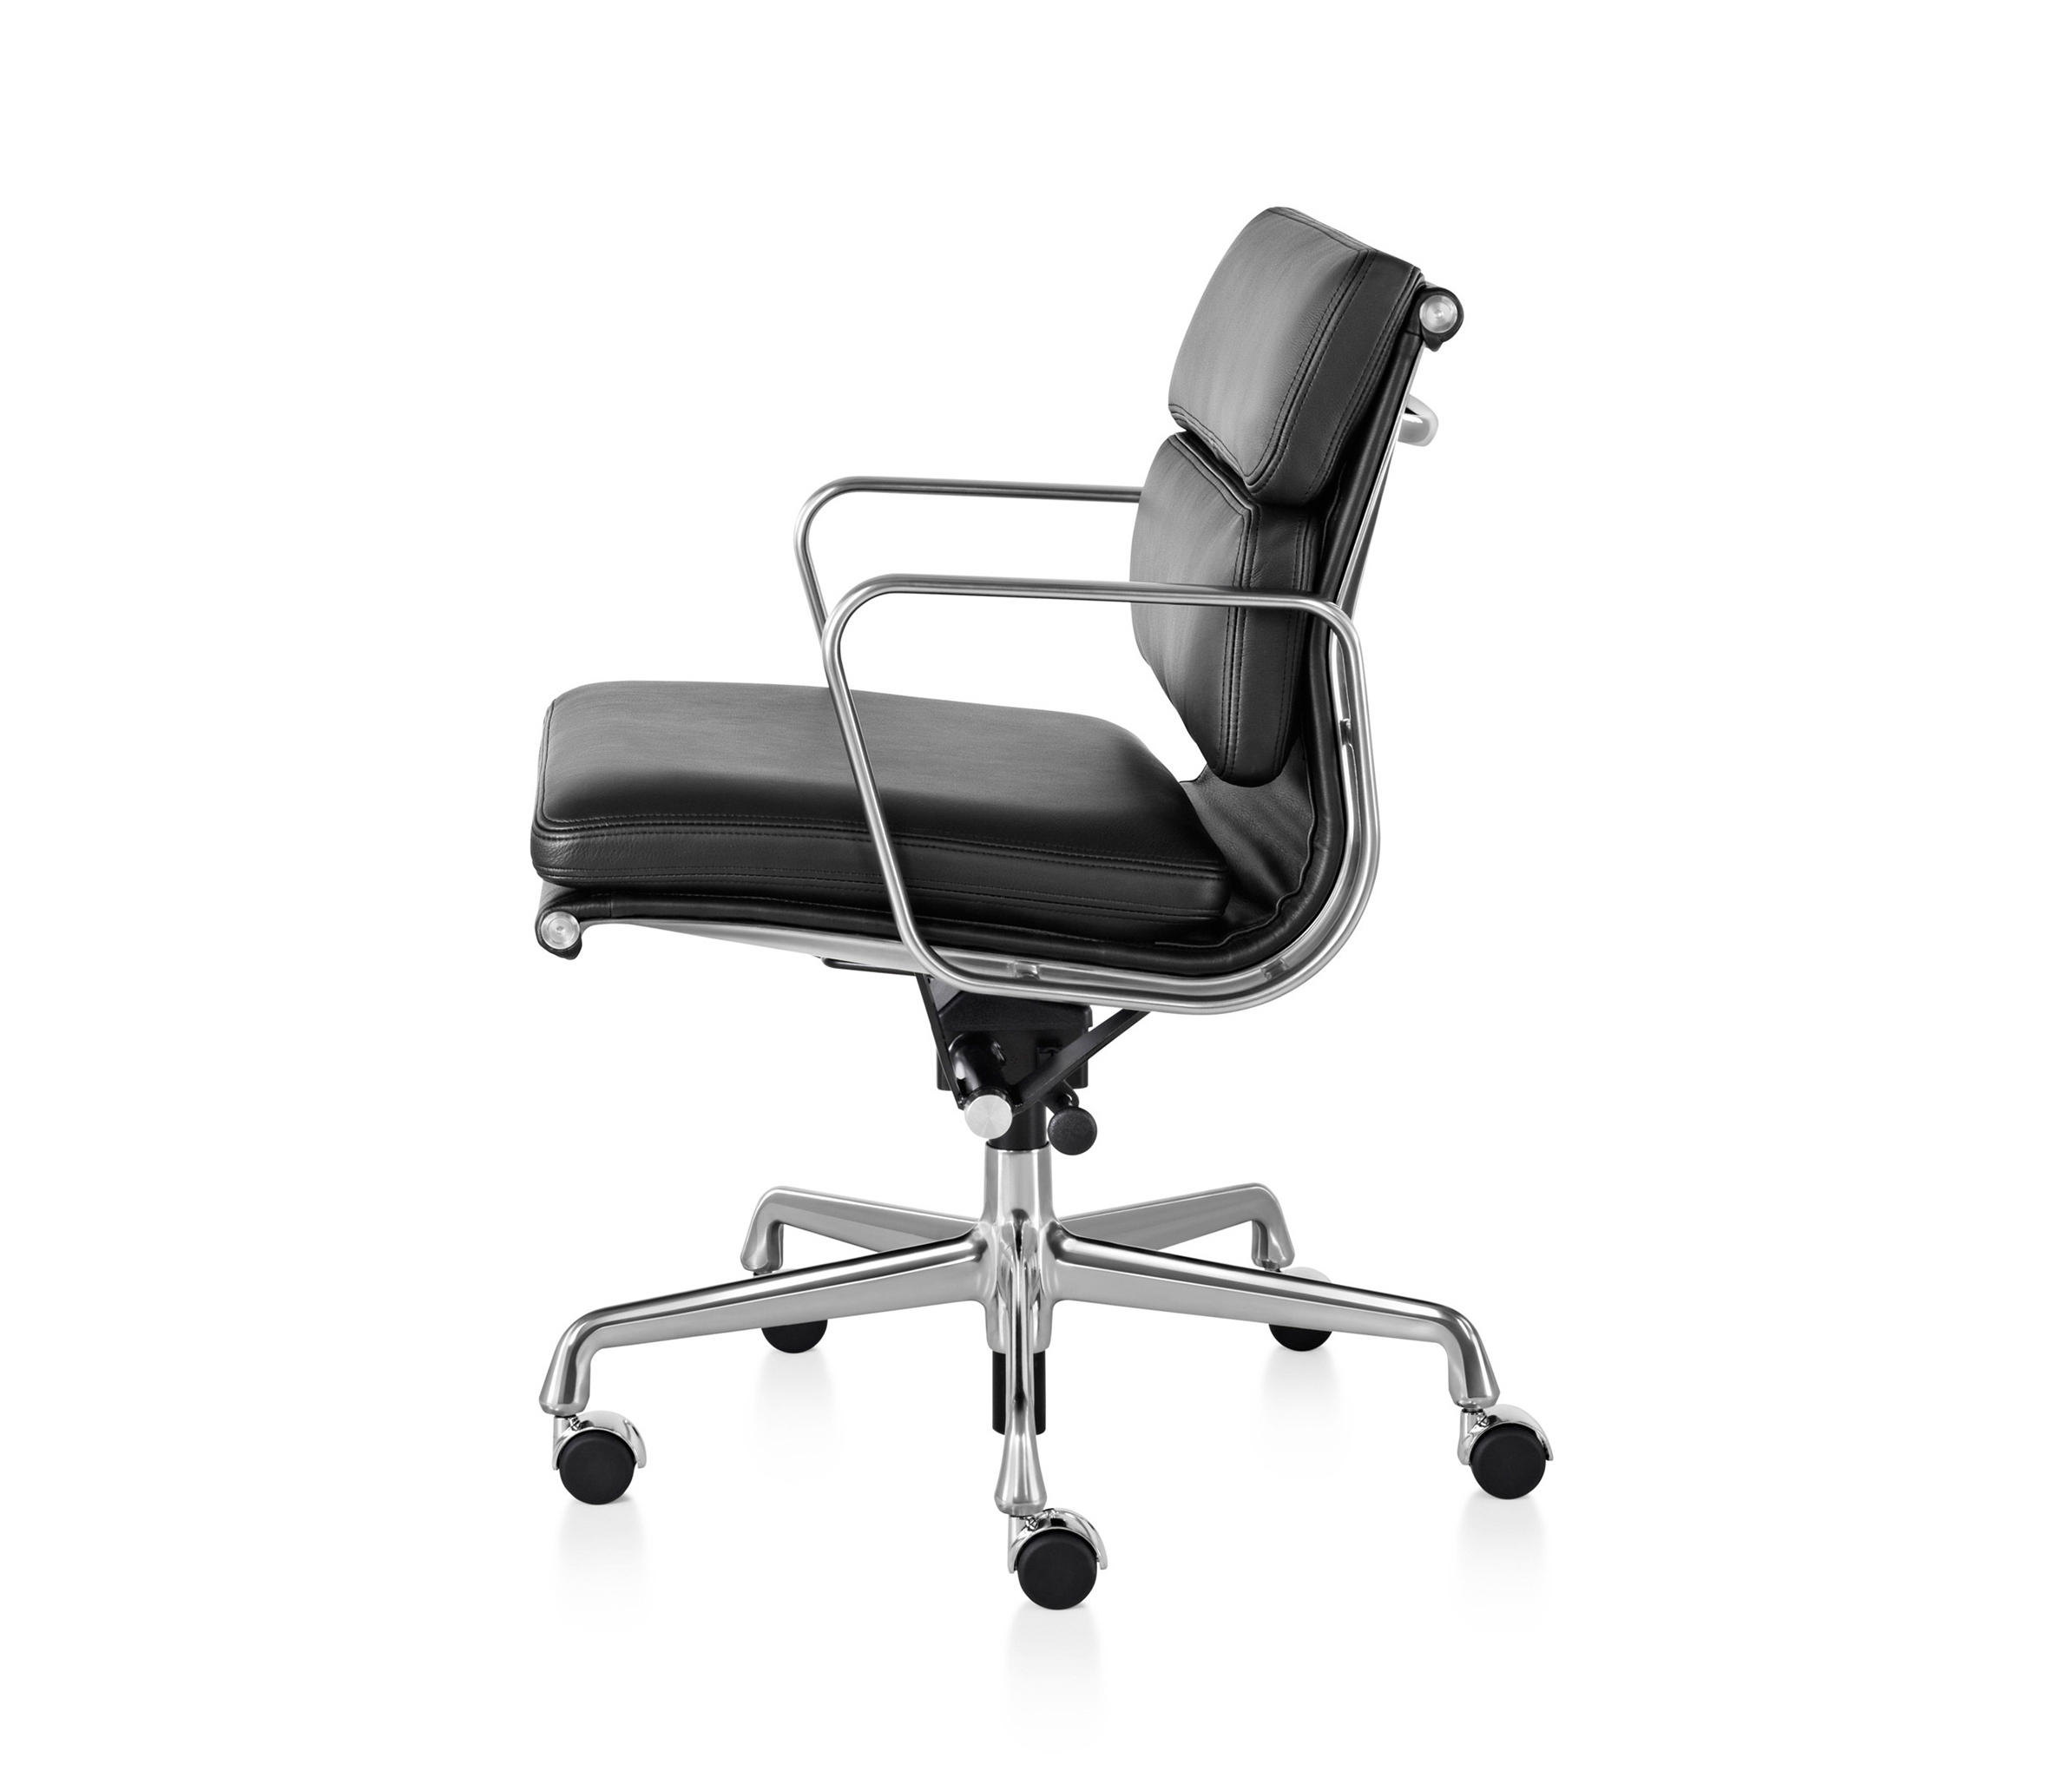 Genial ... Eames Aluminum Group Soft Pad Management Chair By Herman Miller | Chairs